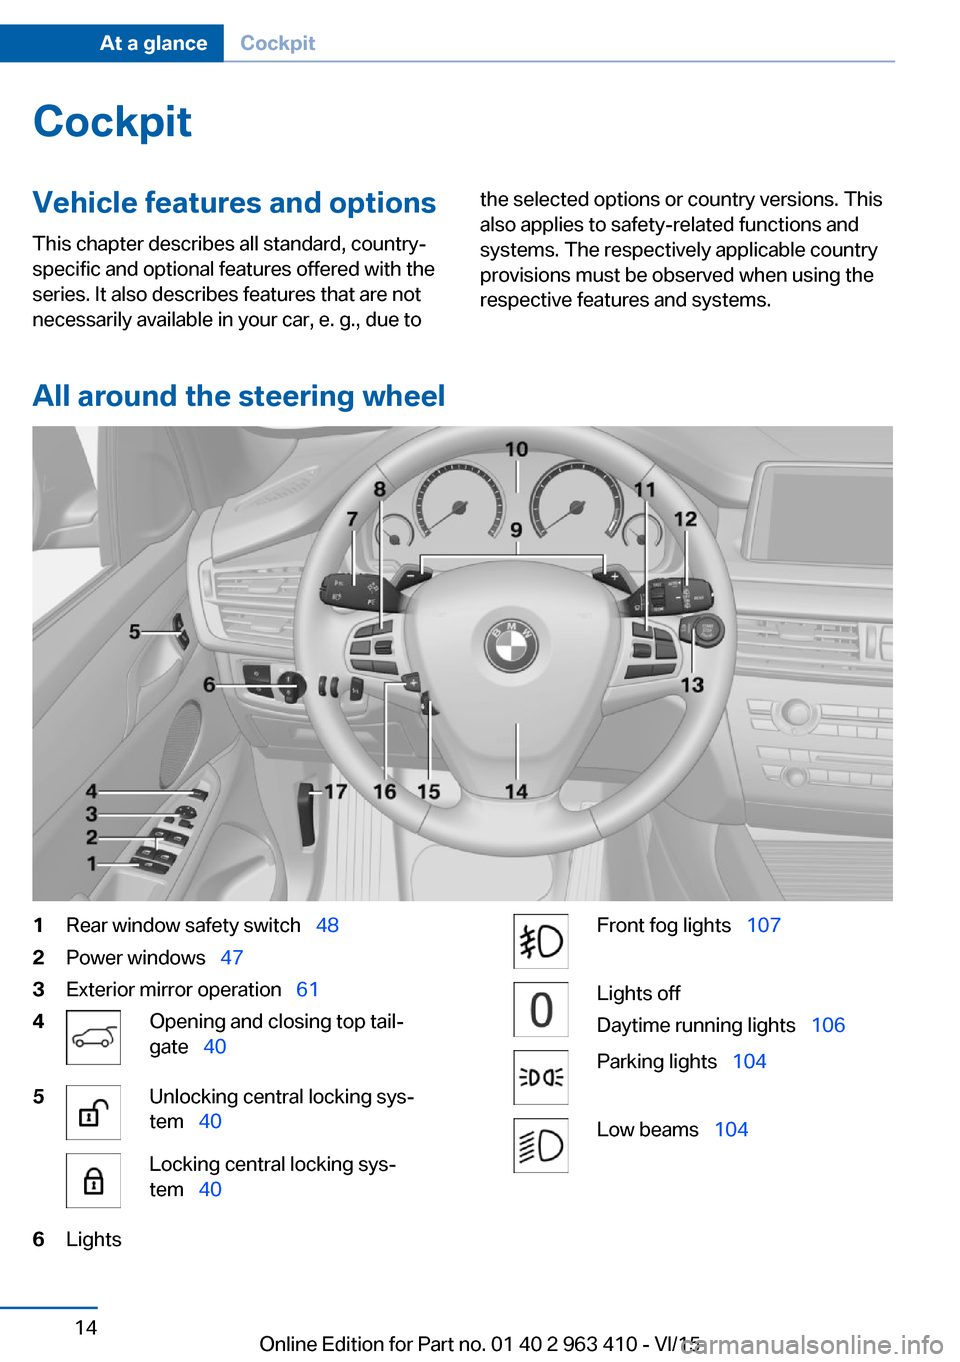 BMW X5 2015 F15 Owners Manual CockpitVehicle features and options This chapter describes all standard, country- specific and optional features offered with the series. It also describes features that are not necessarily available